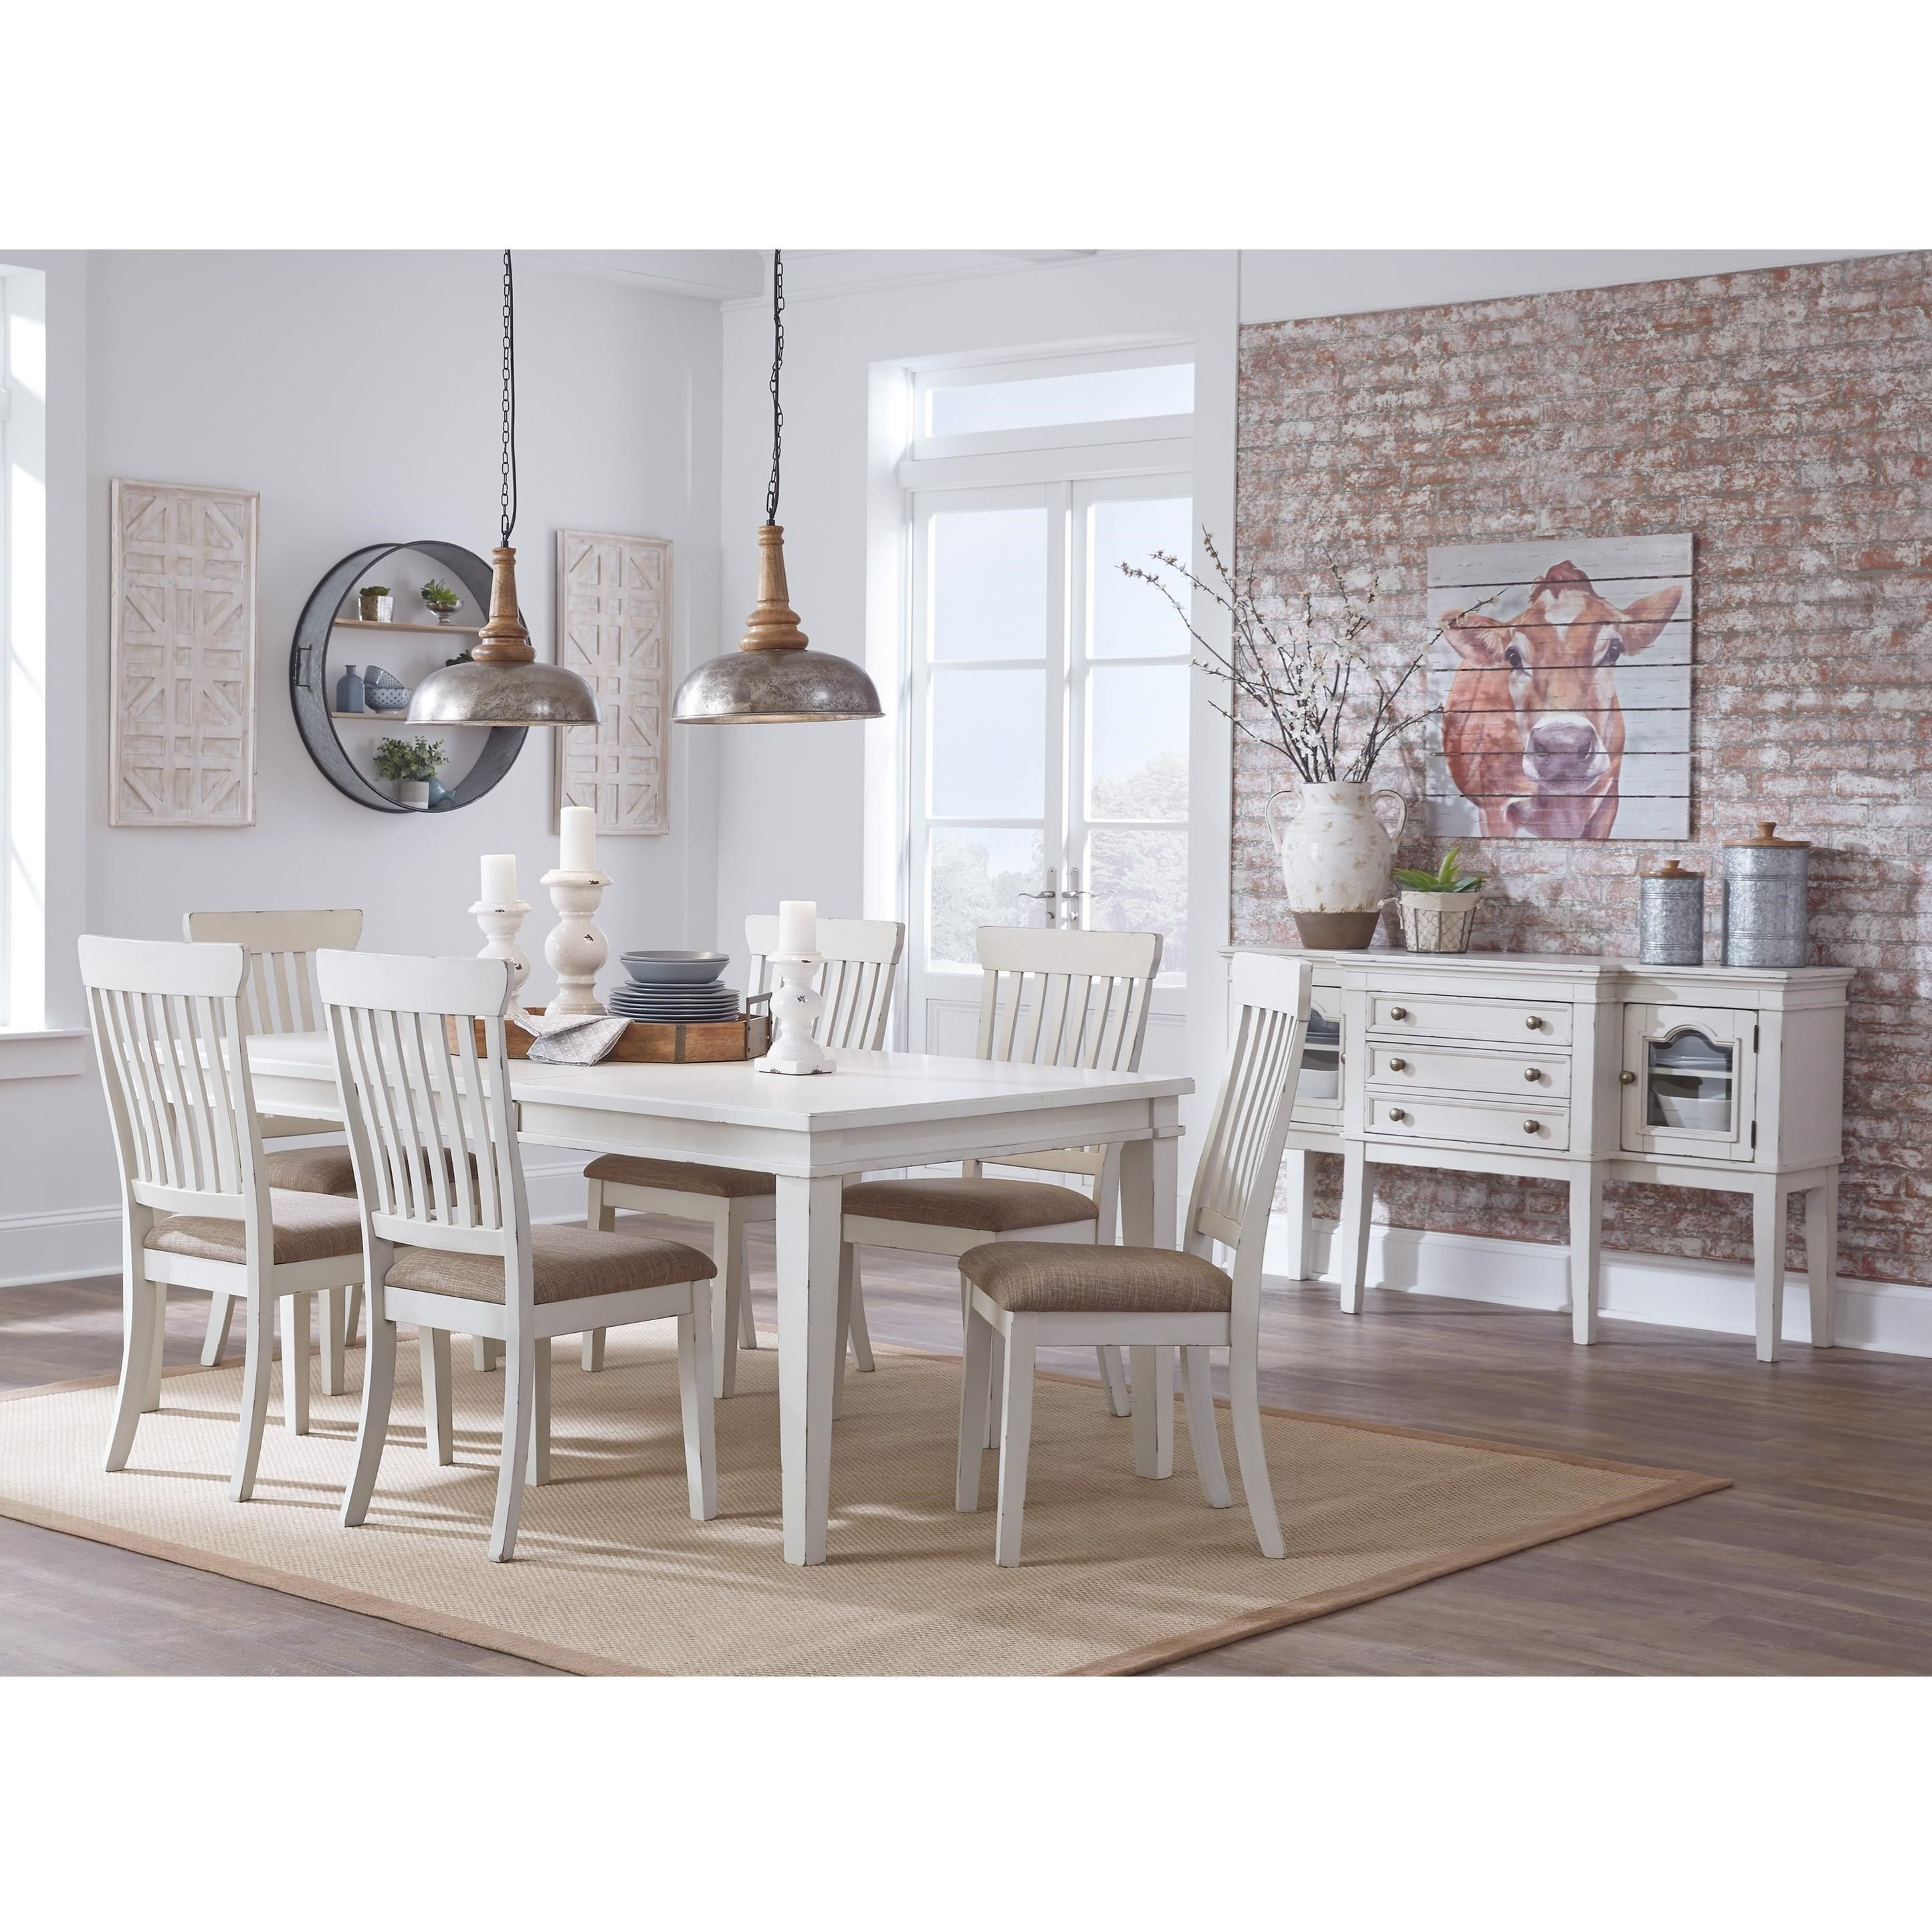 Danbeck Formal Dining Room Group By Signature Design By